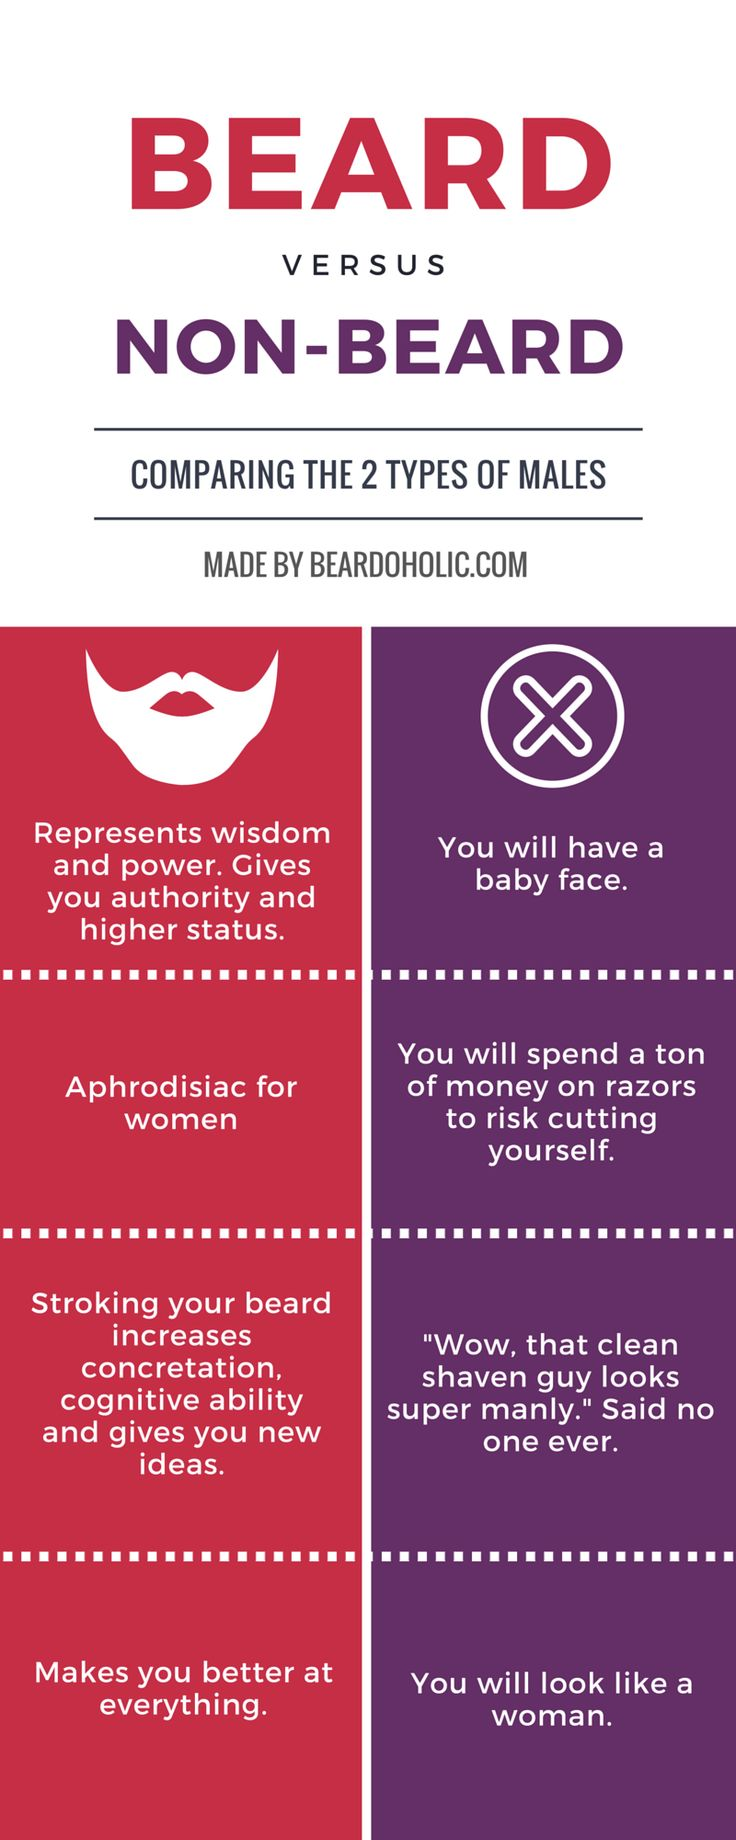 Facebook Twitter Pinterest If you ever had a doubt on growing a beard, this Beard vs Non-Beard infographic should help you make a smart decision.For more help with beard growth go to our homepage. To Share this Image On Your Site Copy the Code Bellow: <p><strong>Please include attribution to Beardoholic.com with this graphic.</strong></p> <p><a href='http://beardoholic.com/beard-infographic/'><img …